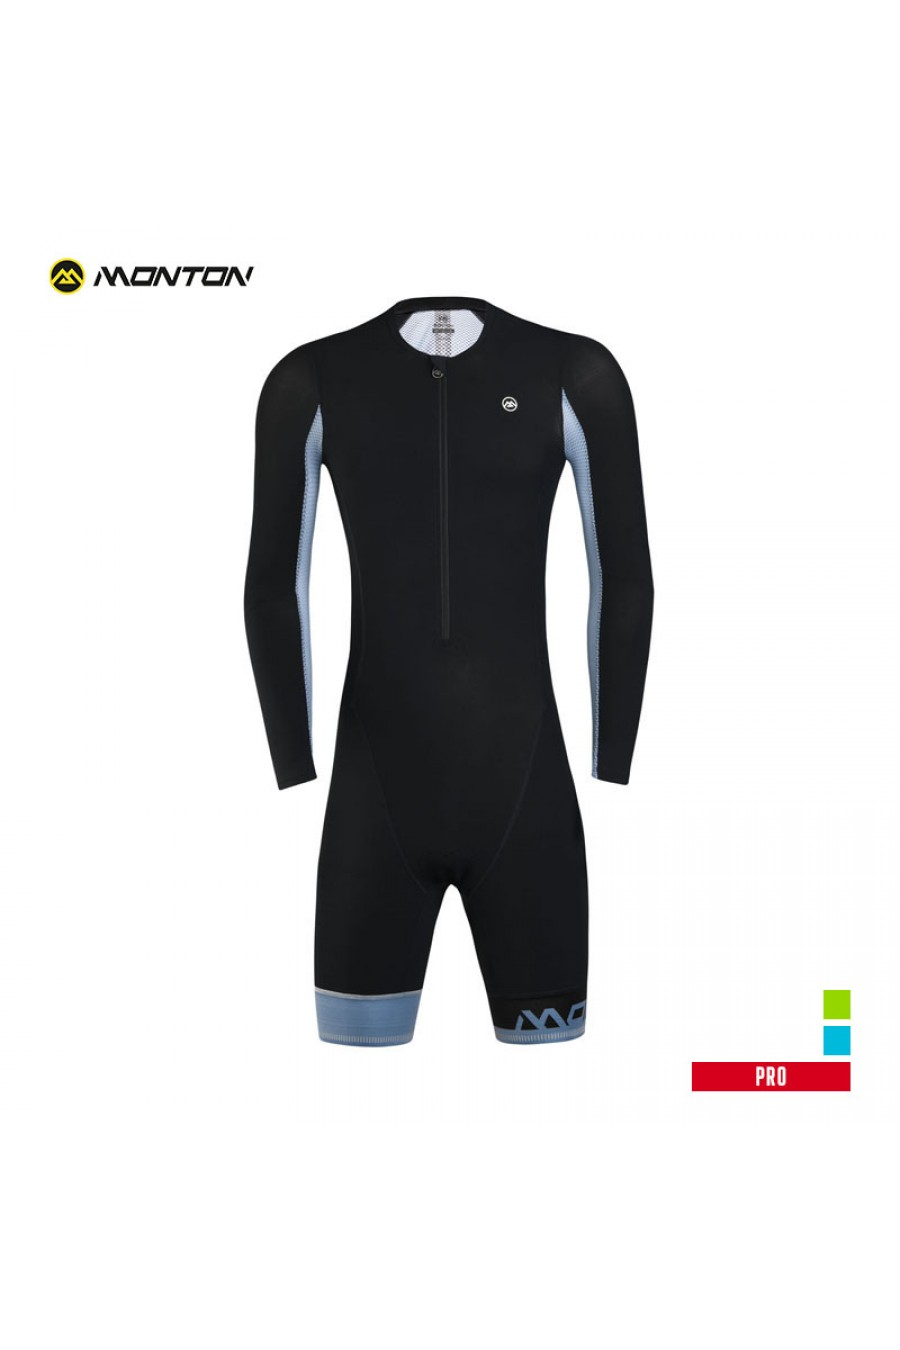 a6da7aa79a5 ... 2019 Long Sleeve Triathlon Suit Mens PRO Raceii. triathlon tri suit